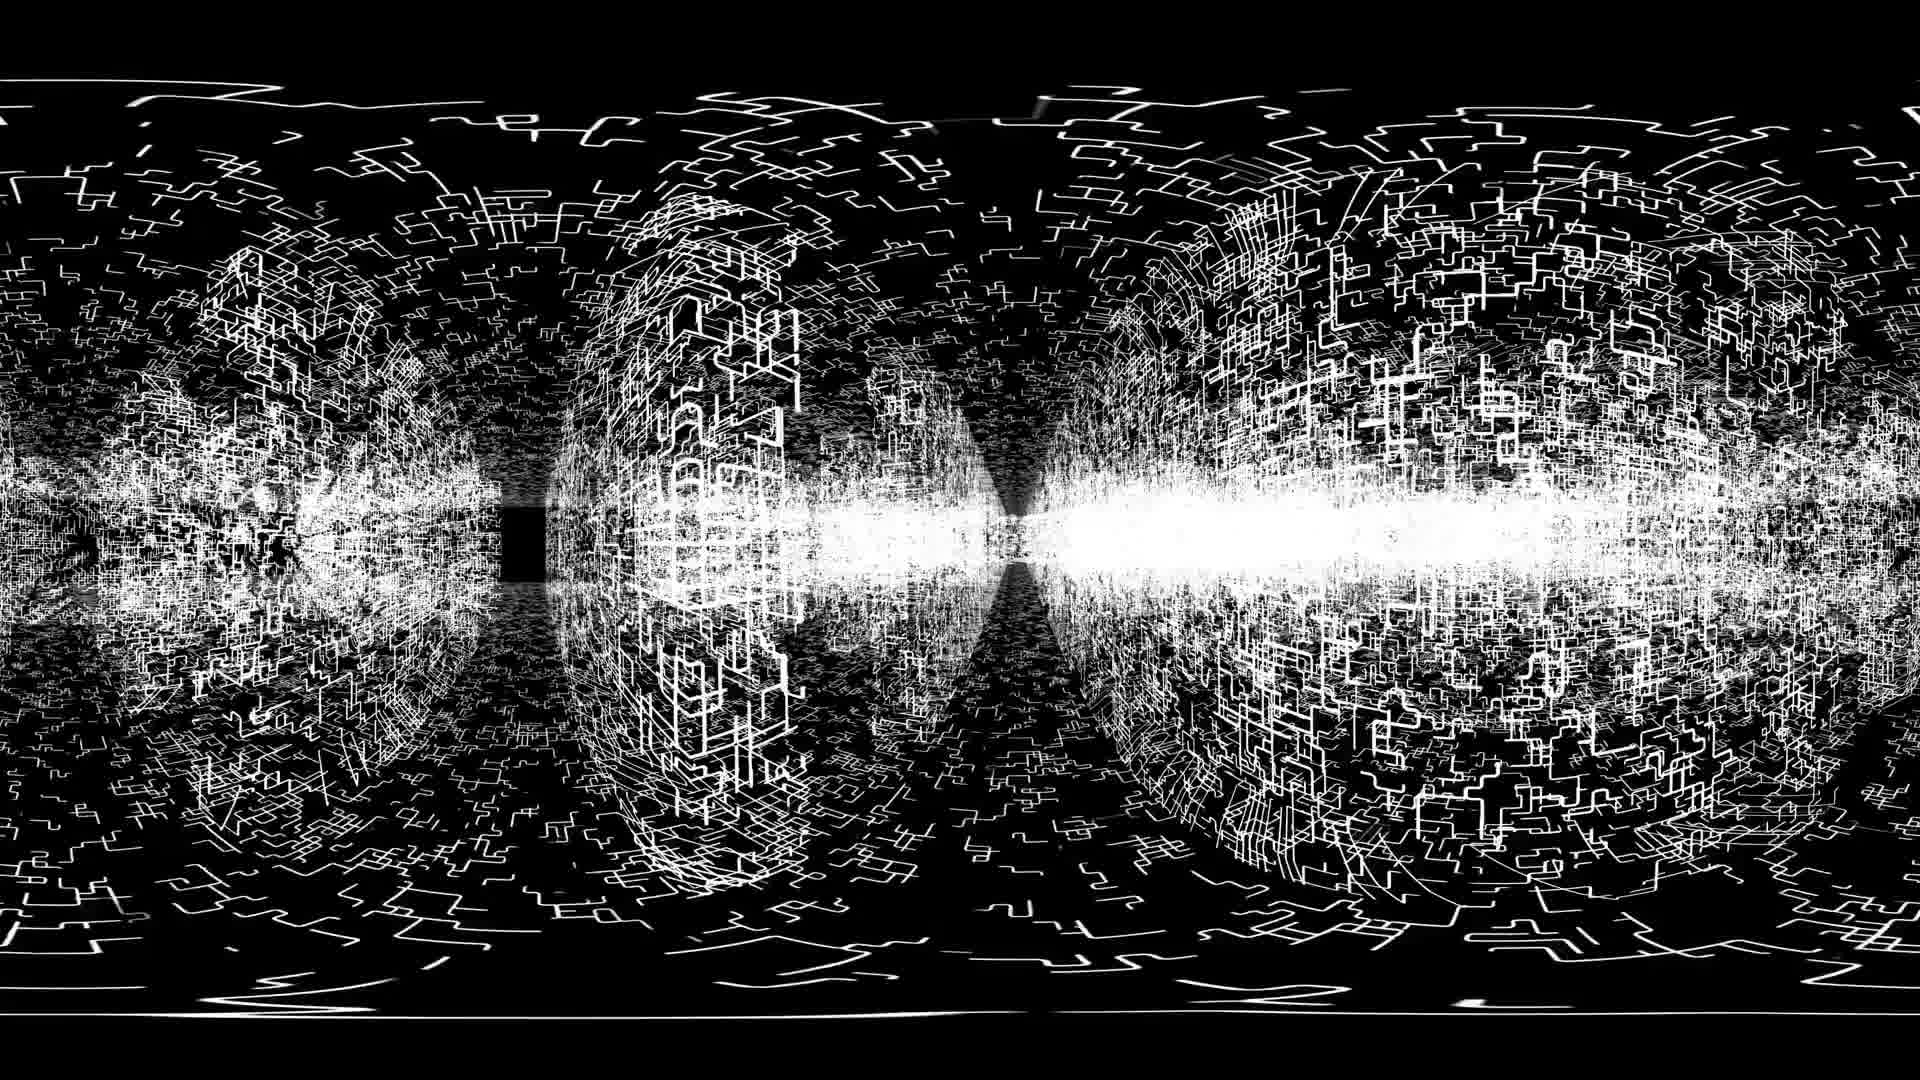 360 VR Maze 006: Virtual reality video inside a maze of grid lines (Loop). Designed to be used in Oculus Rift, Samsung Gear VR and other virtual reality displays.